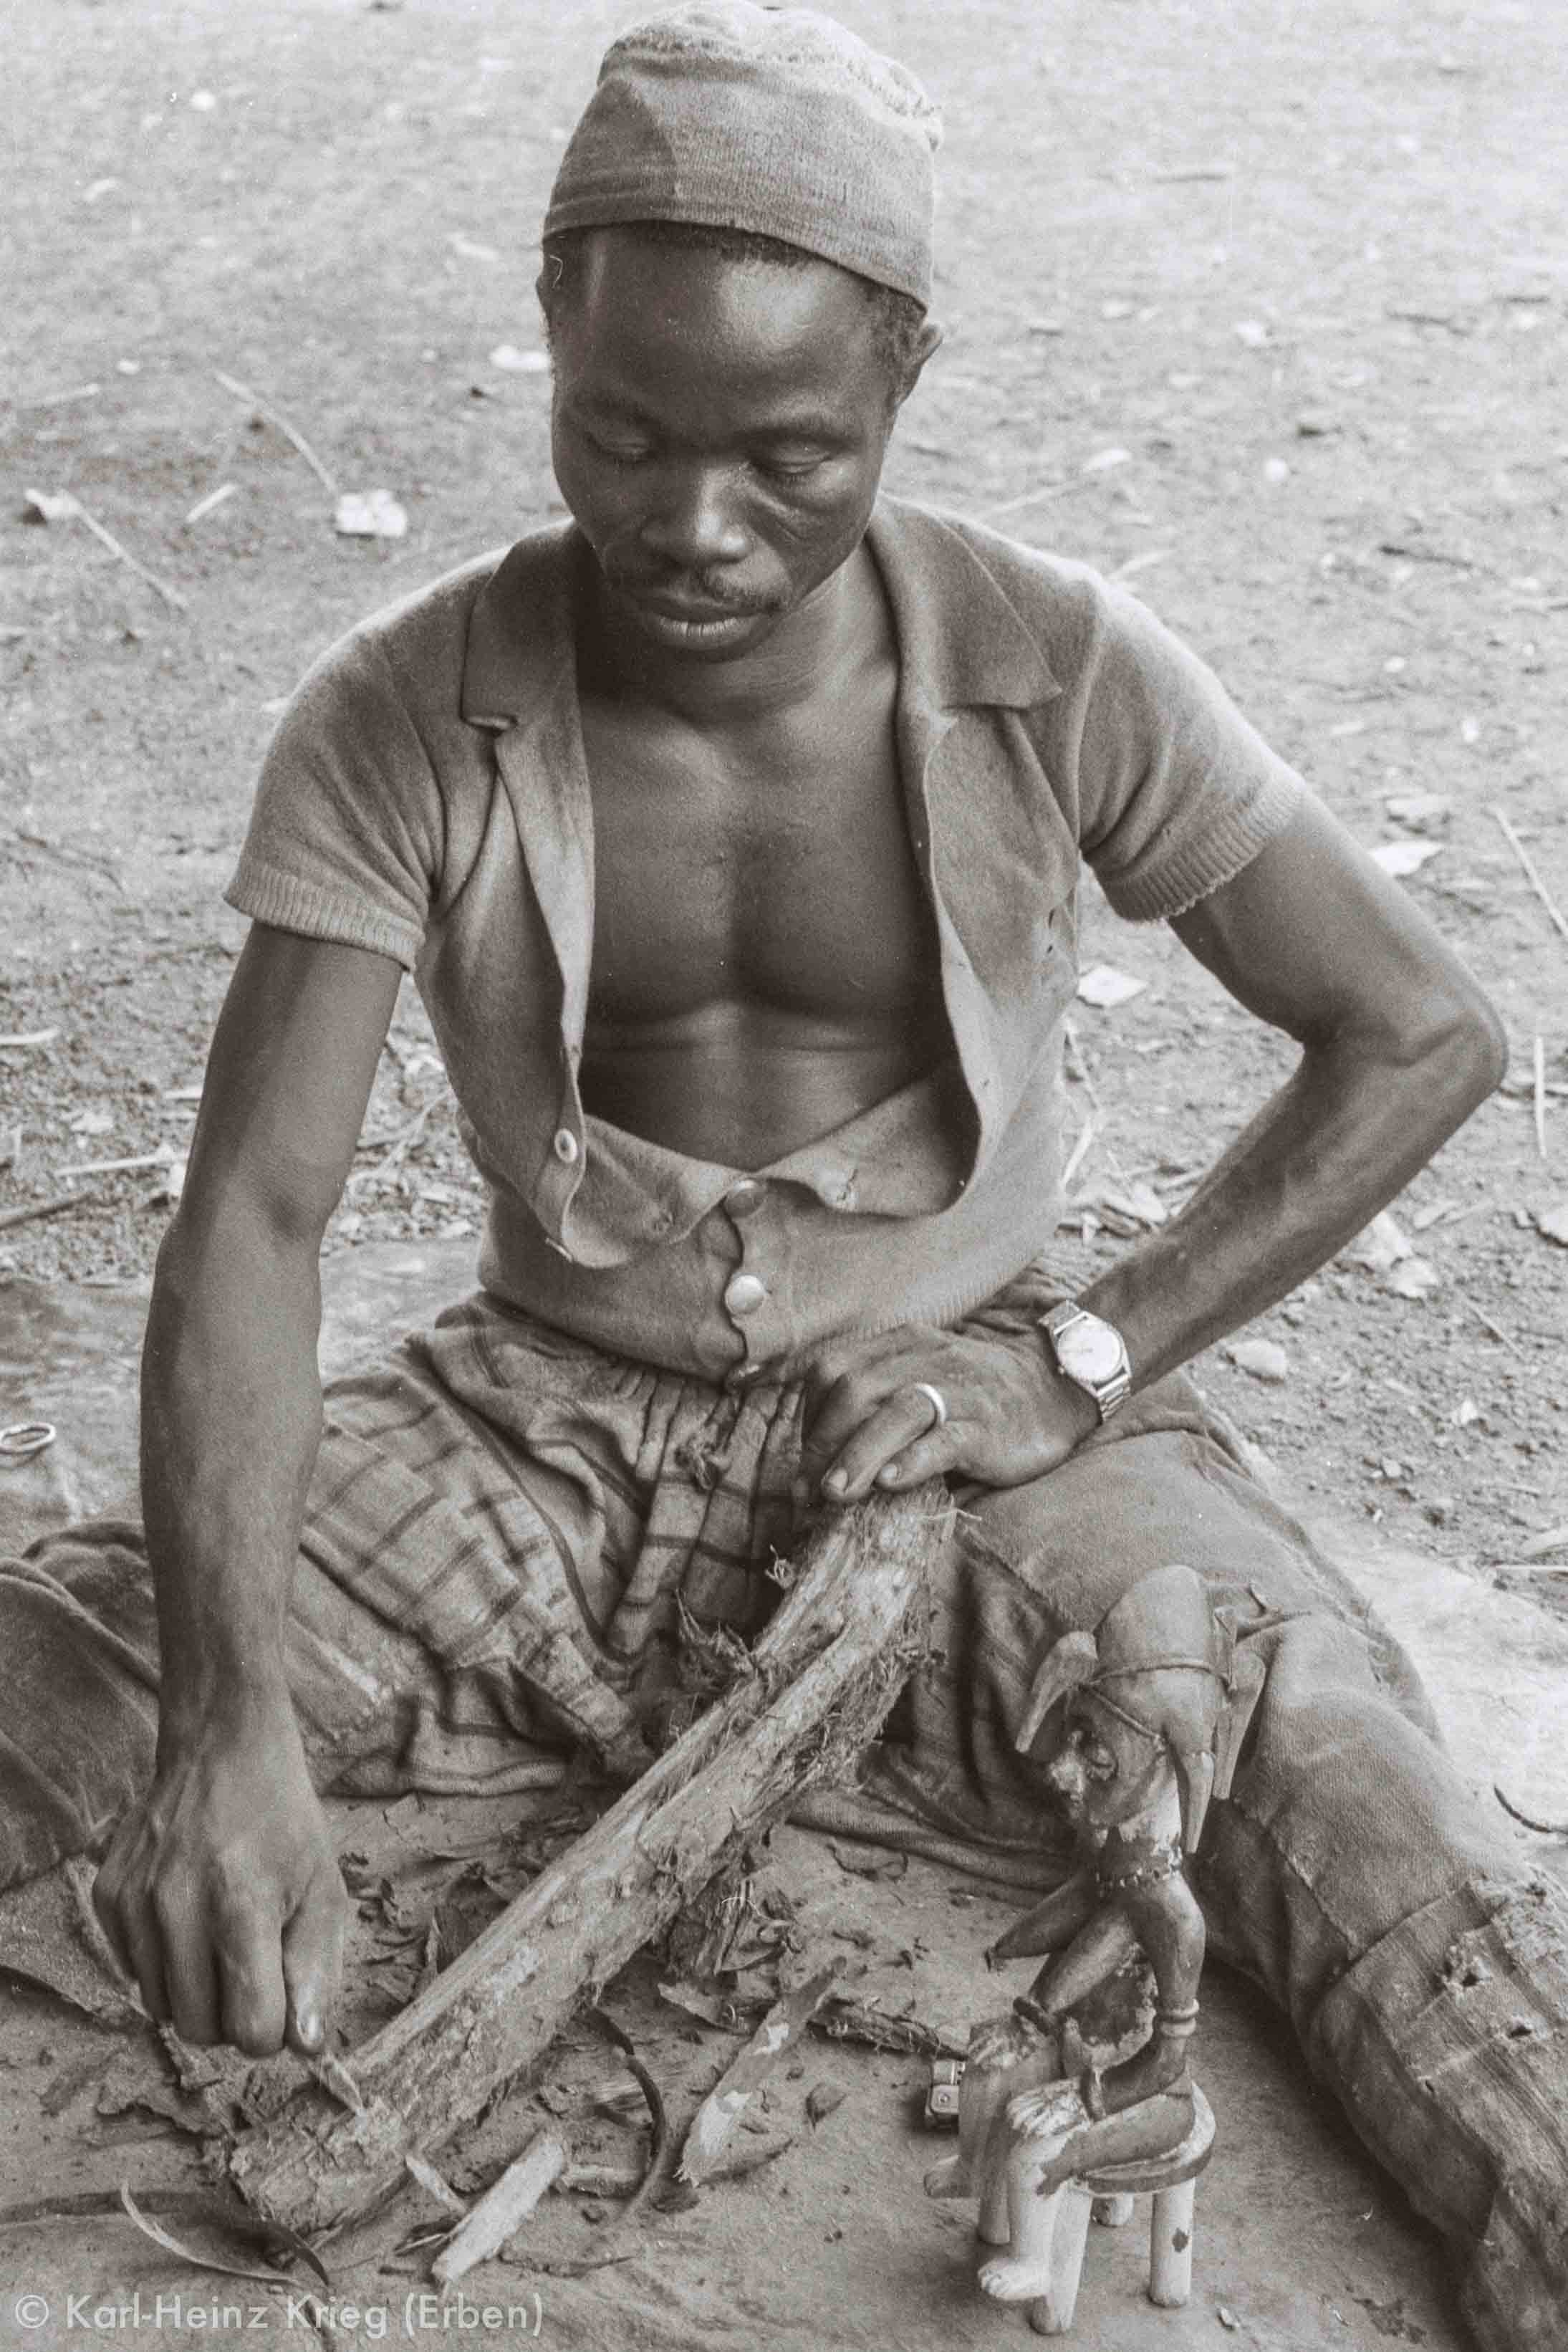 Sécondjéwin Dagnogo making red pigment from a tree root. Poundiou (Region of Boundiali, Côte d'Ivoire), 1975. Photo: Karl-Heinz Krieg